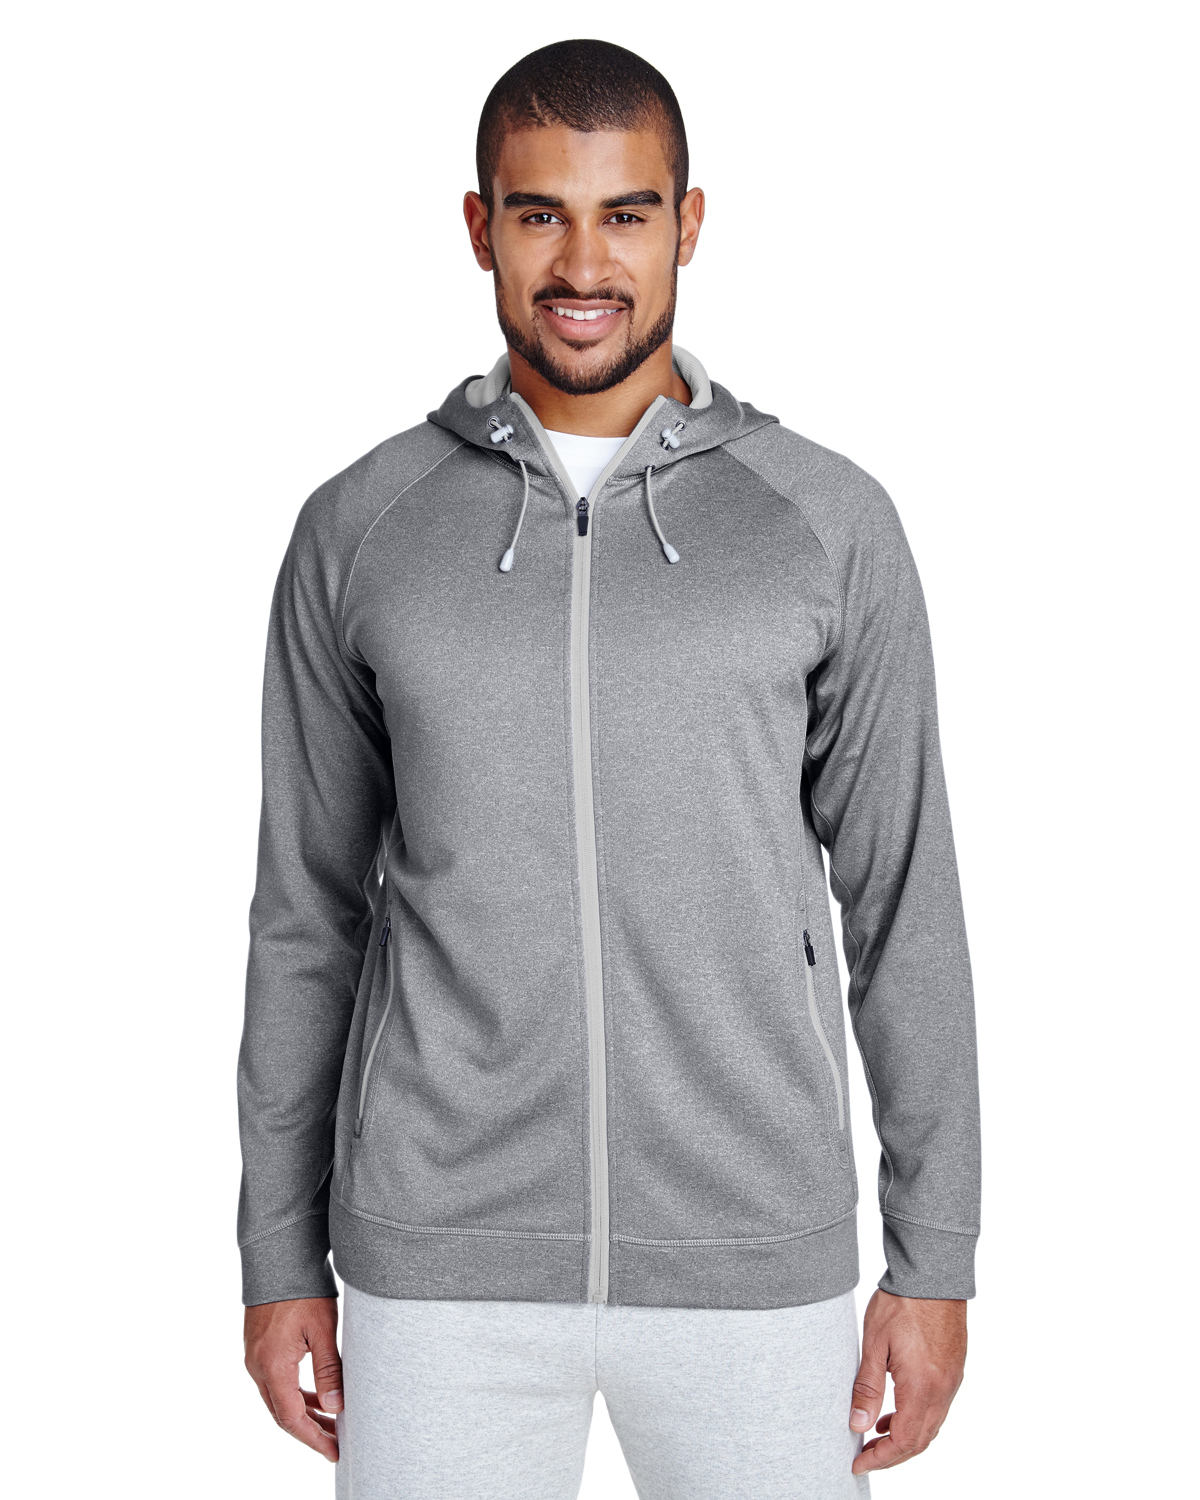 Men's Excel Mélange Performance Fleece Jacket